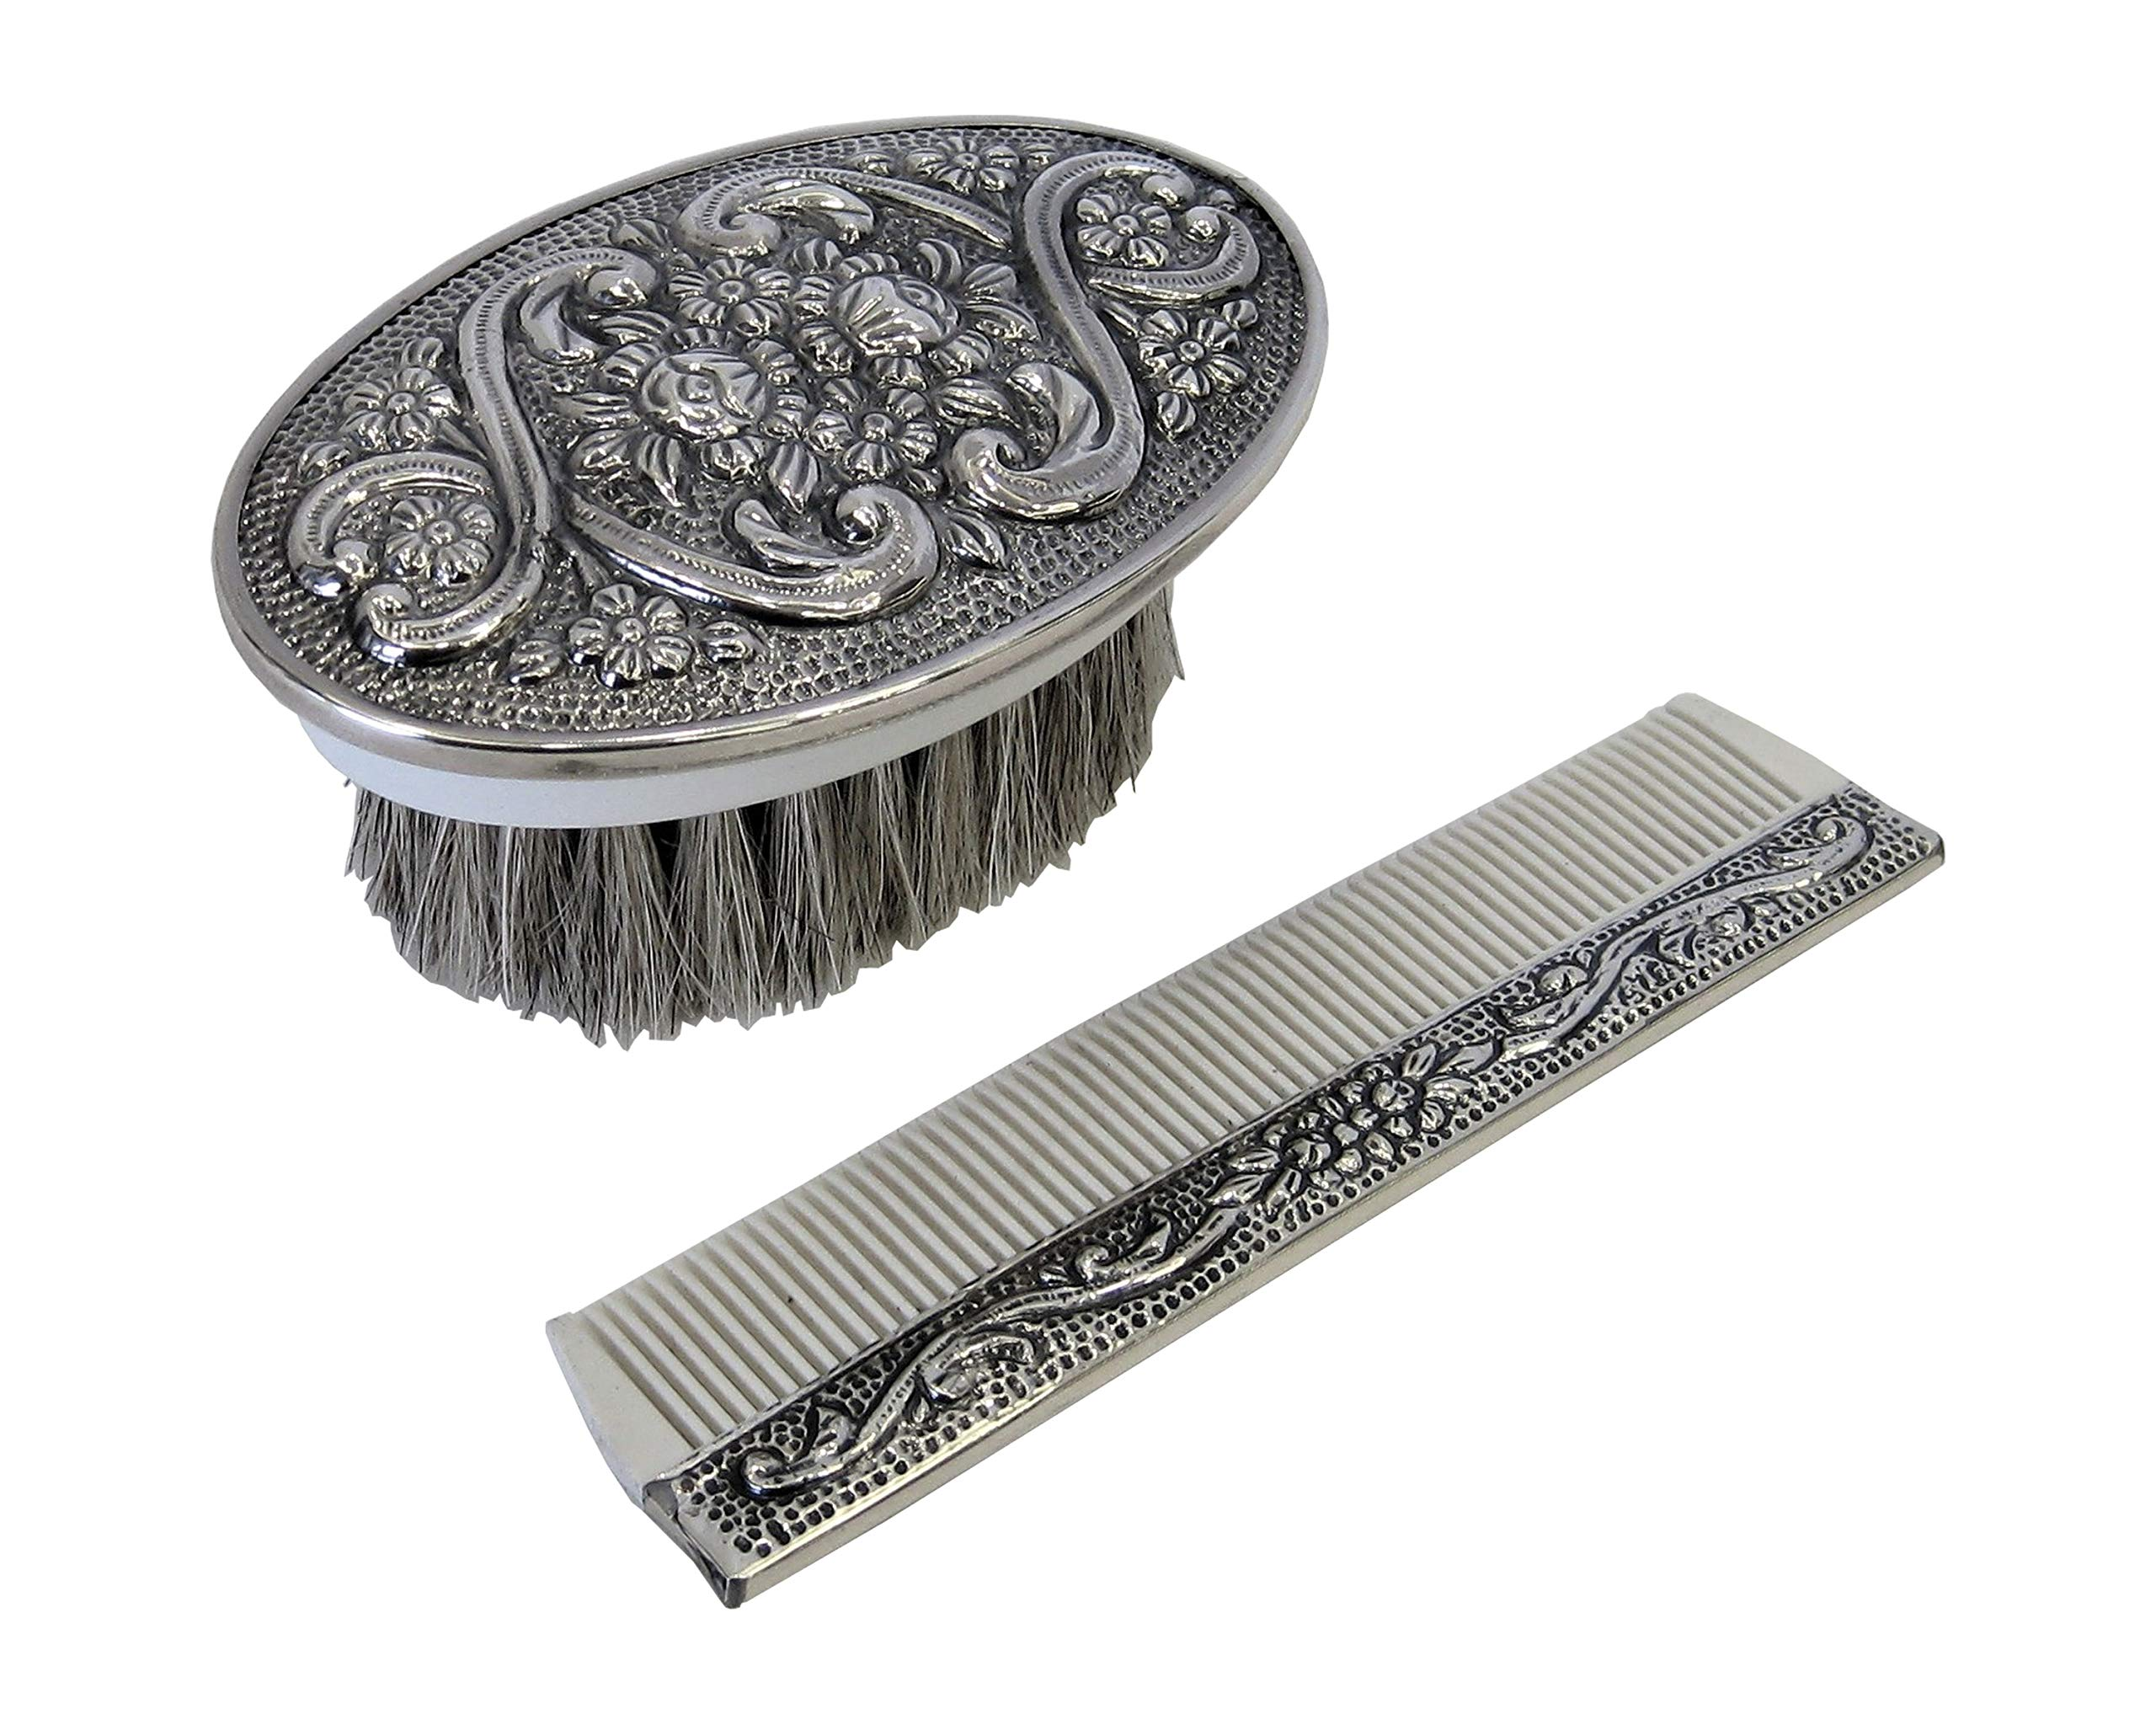 925 Sterling Silver Boy's Comb & Brush Set with Blue Felt Gift Box by Gelco